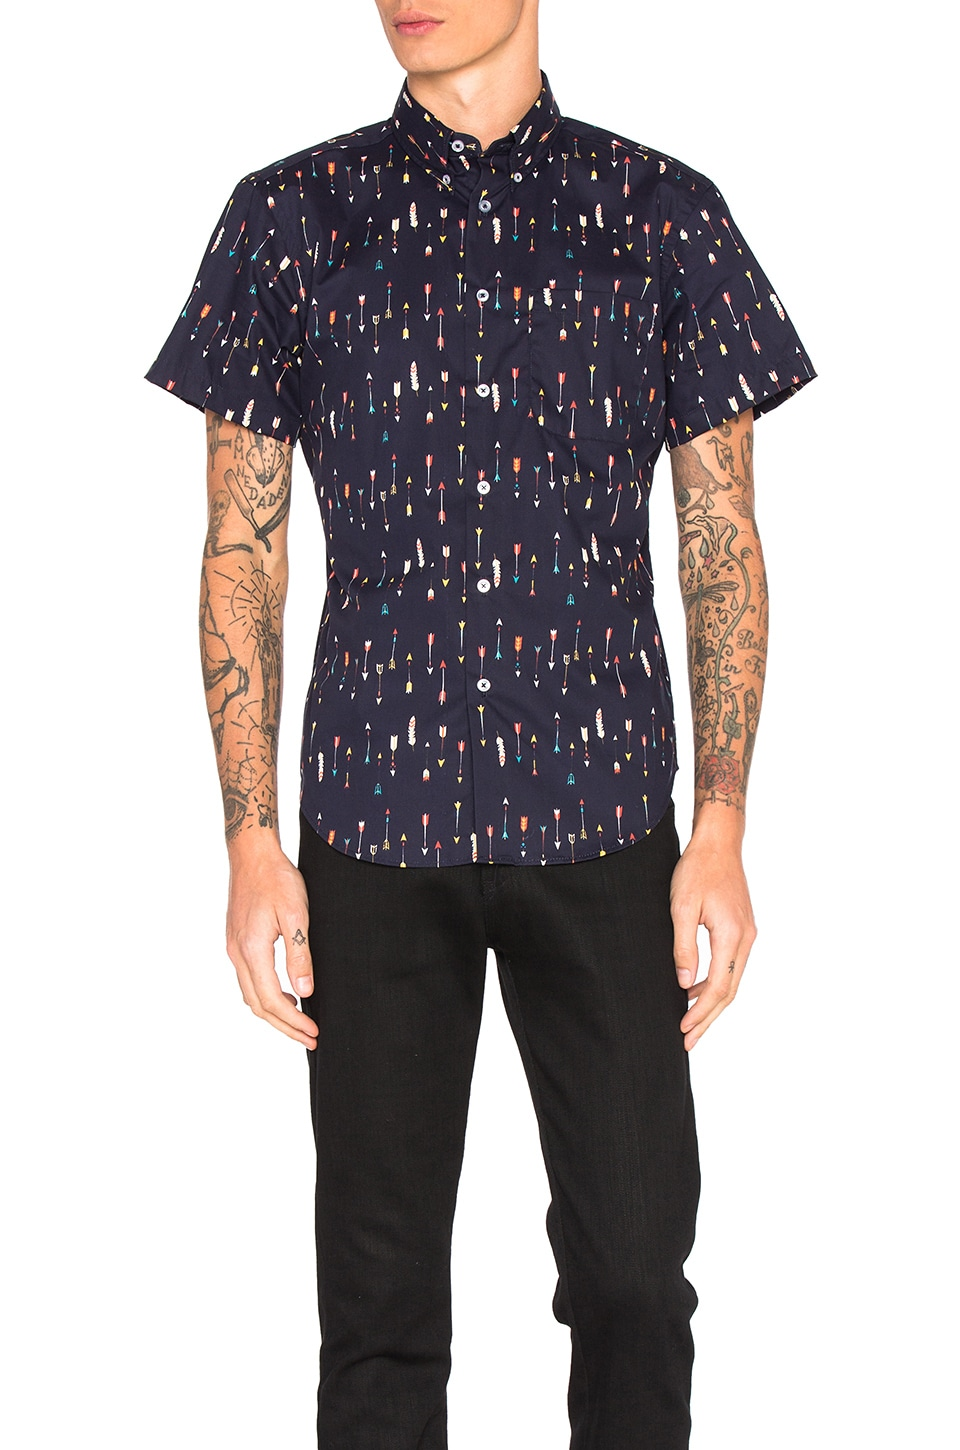 S/S Shirt by Naked & Famous Denim